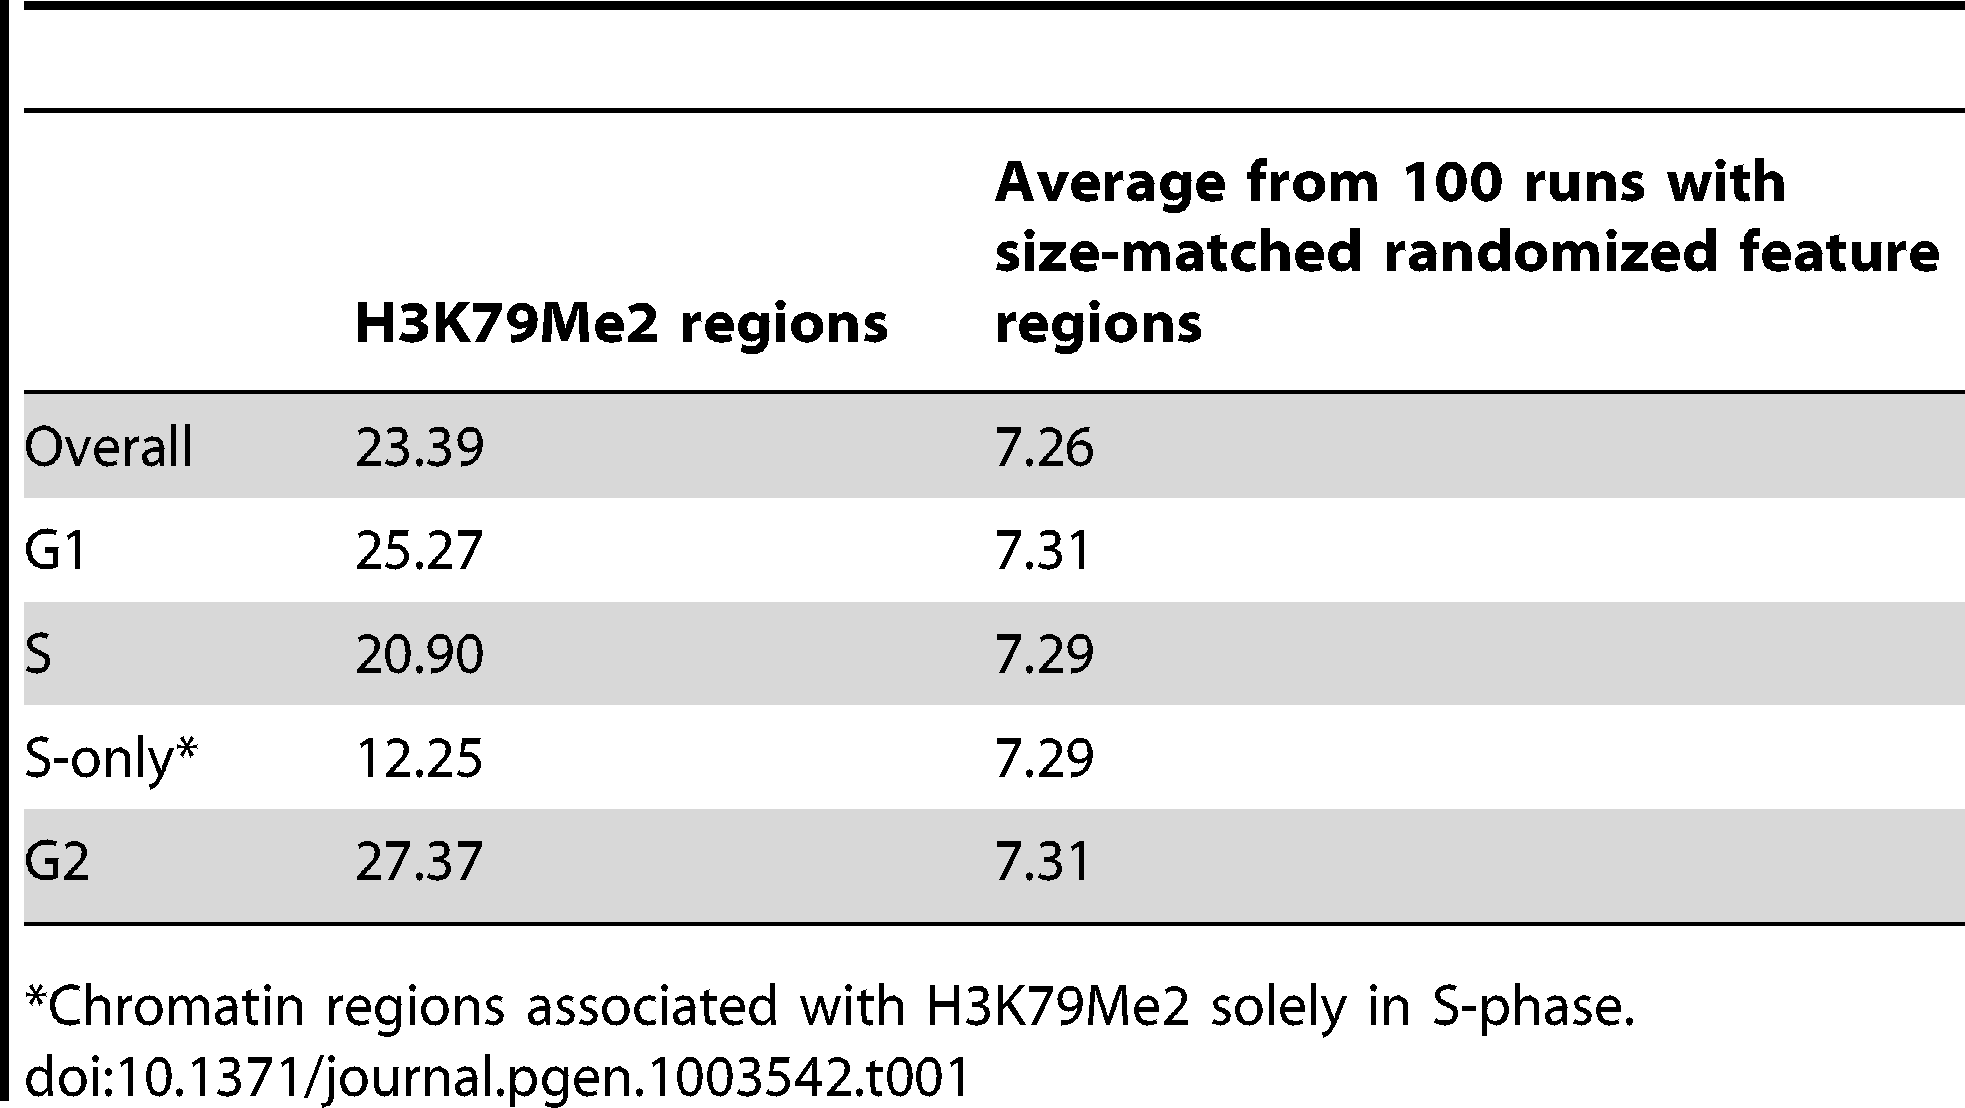 Fraction of H3K79Me2 regions that are within 2000 bp from a 15% FDR replication peak.